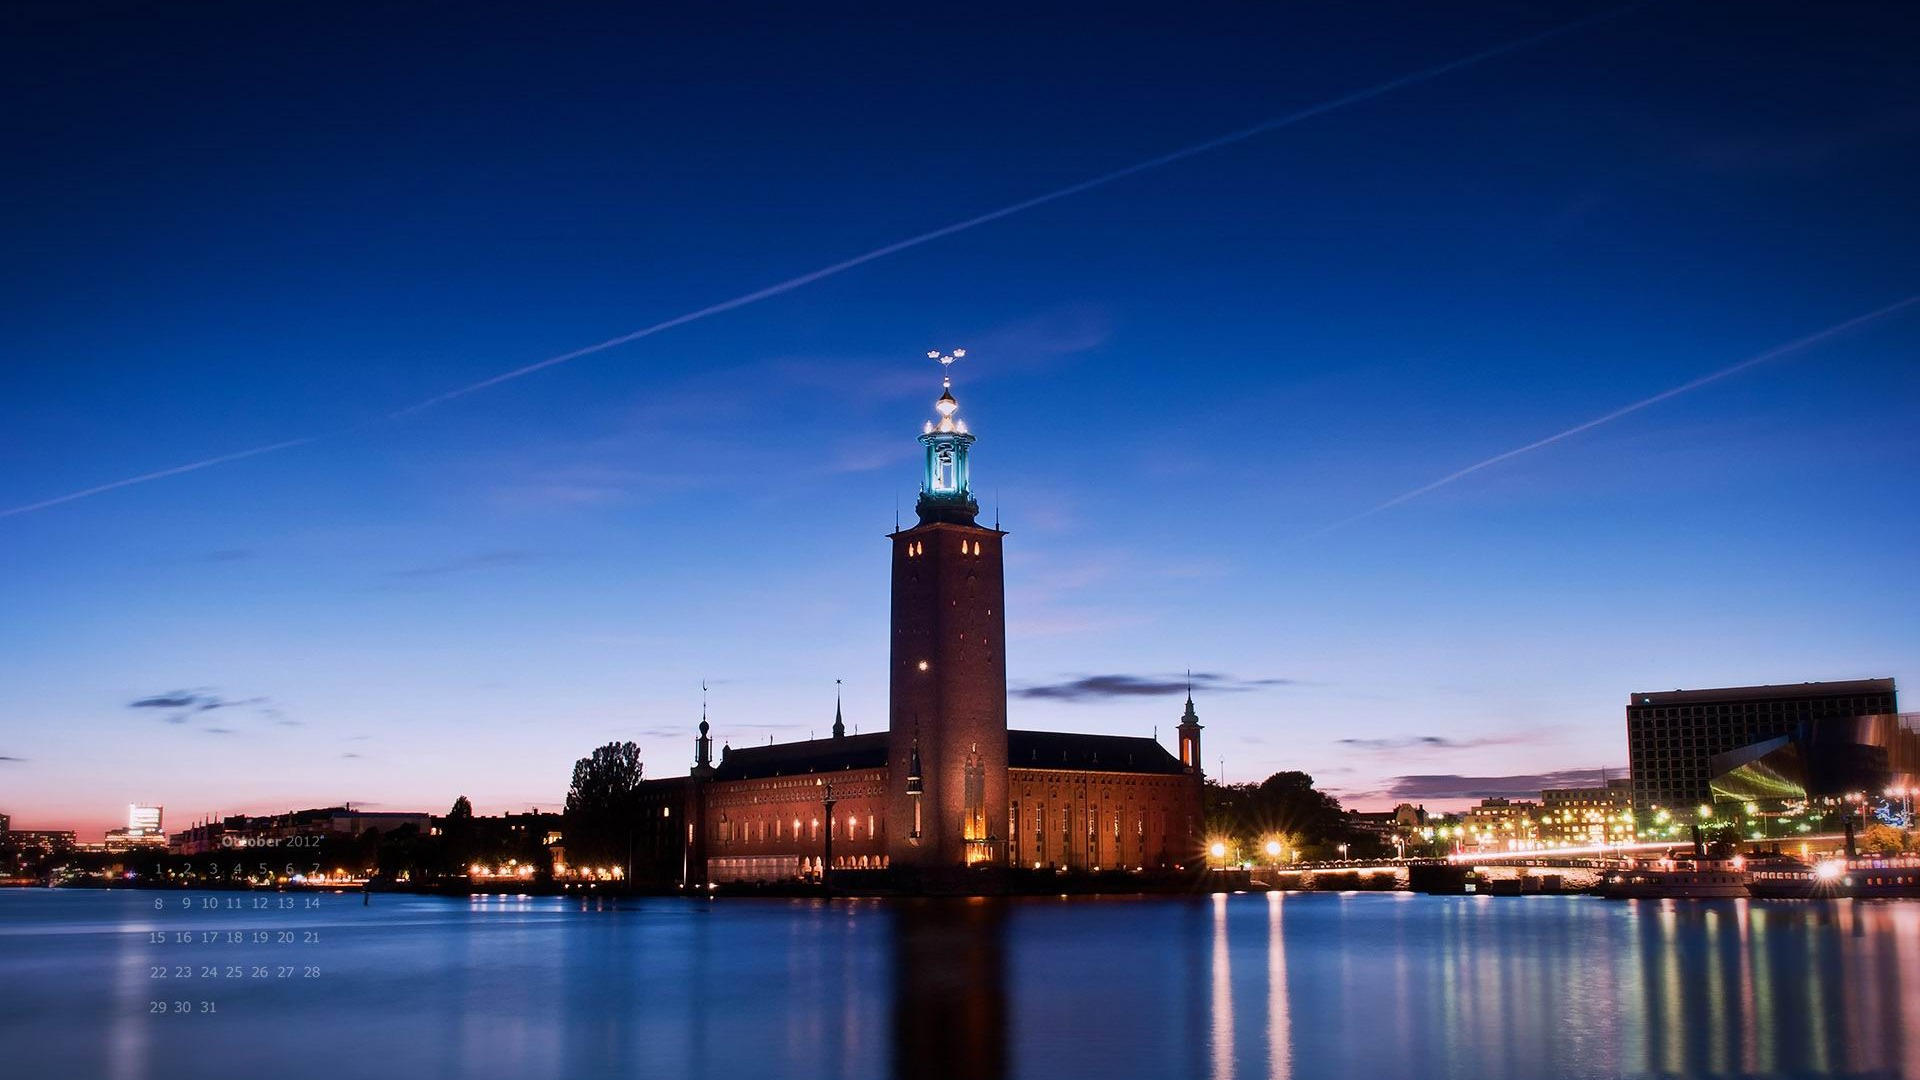 Stockholm Sweden Landscape Photography Hd Wallpaper